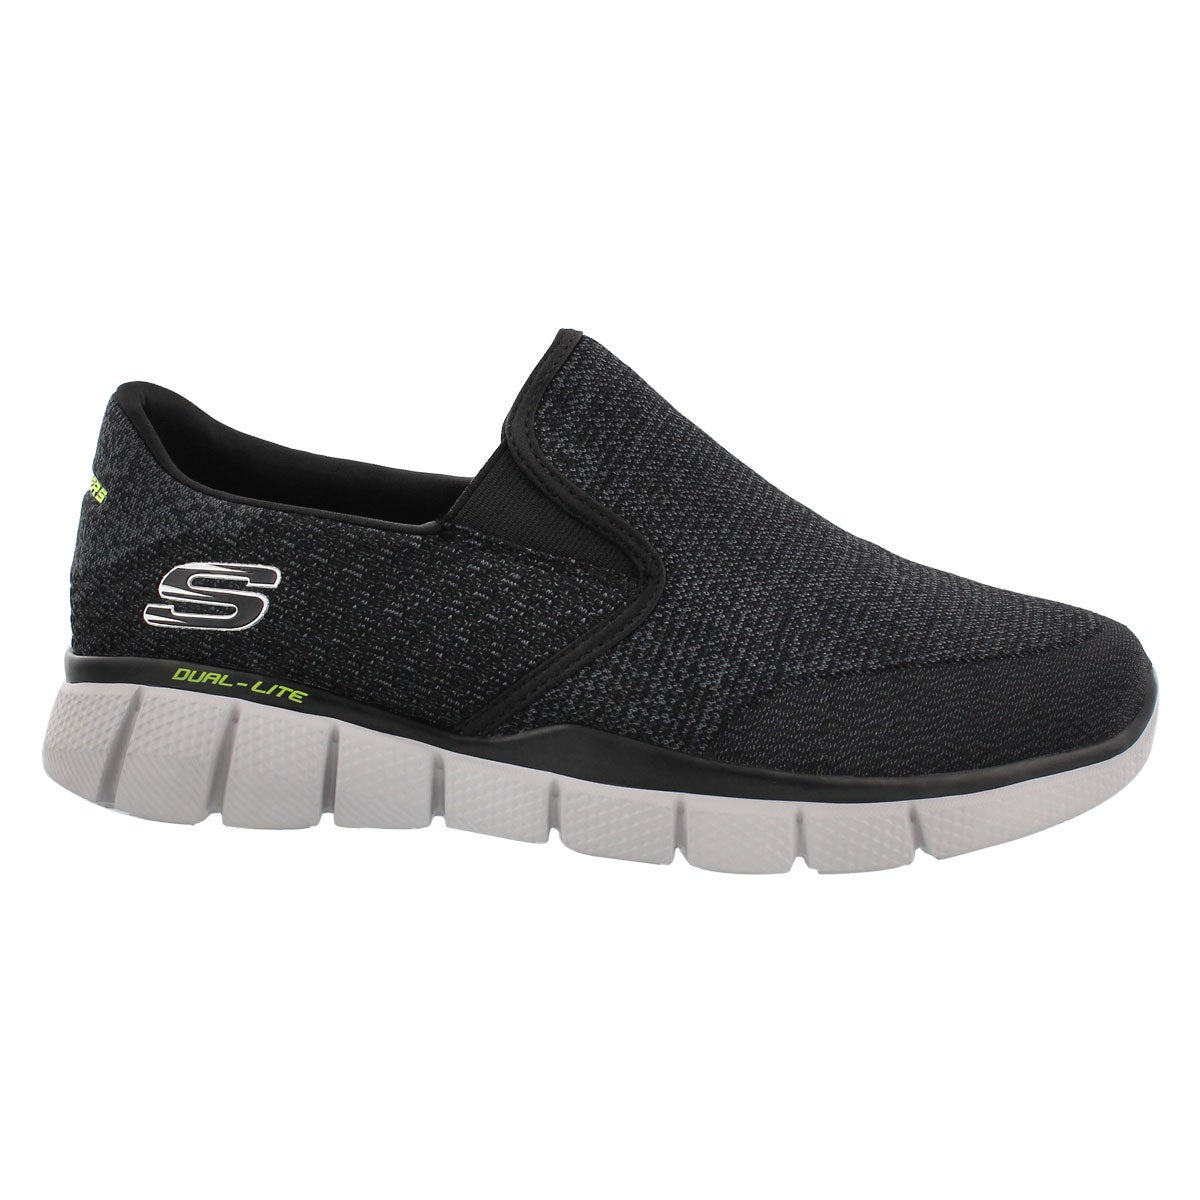 Mns Equalizer- 2.0 blk slip on - Wide